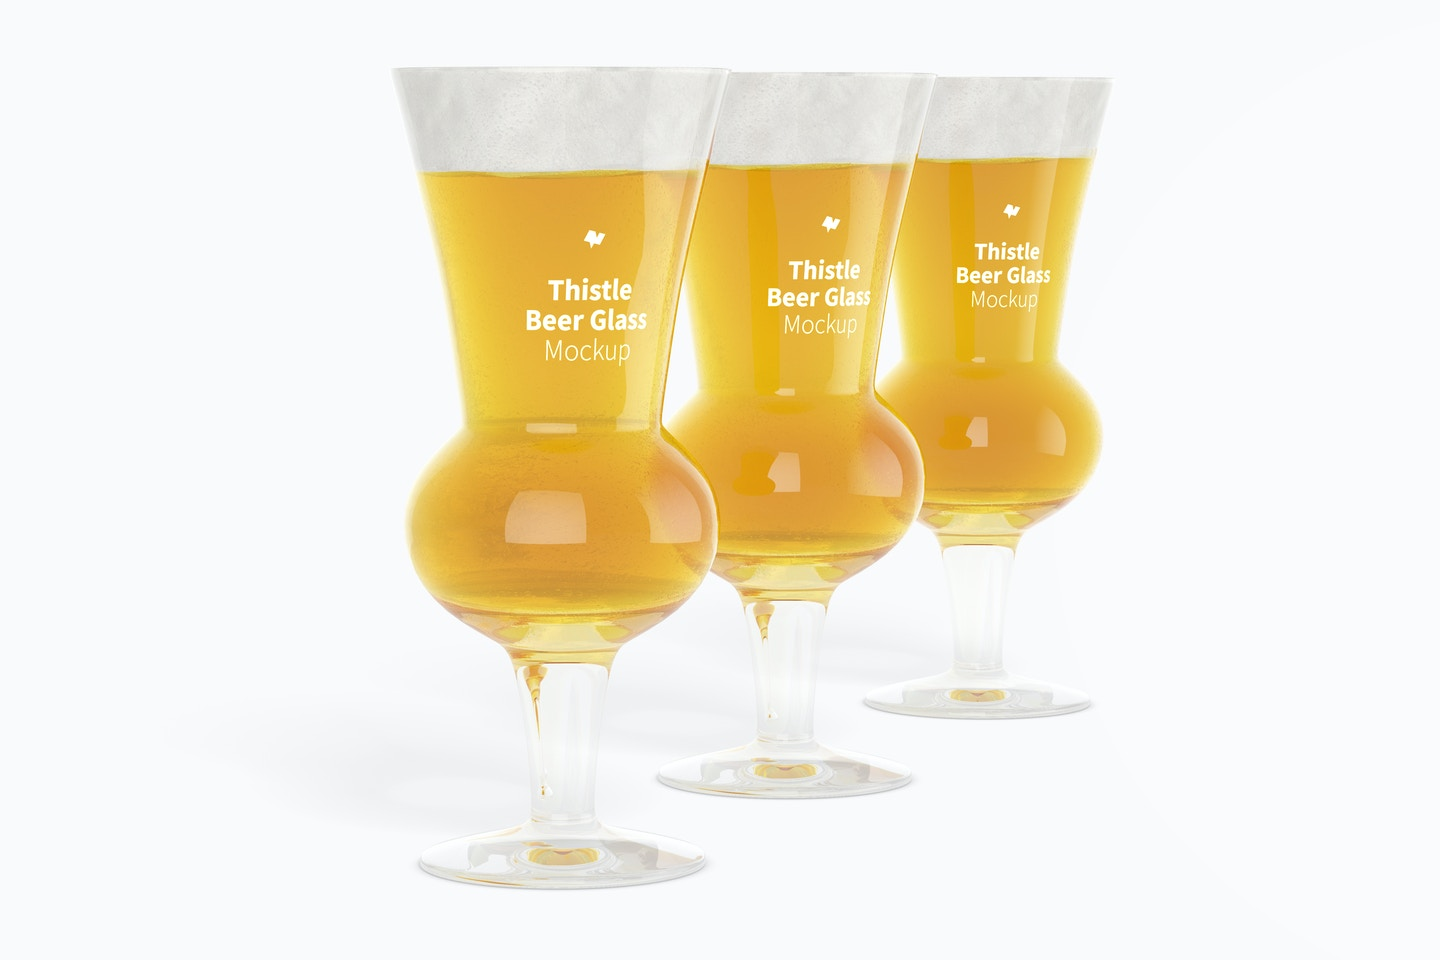 Thistle Beer Glasses Mockup, Perspective